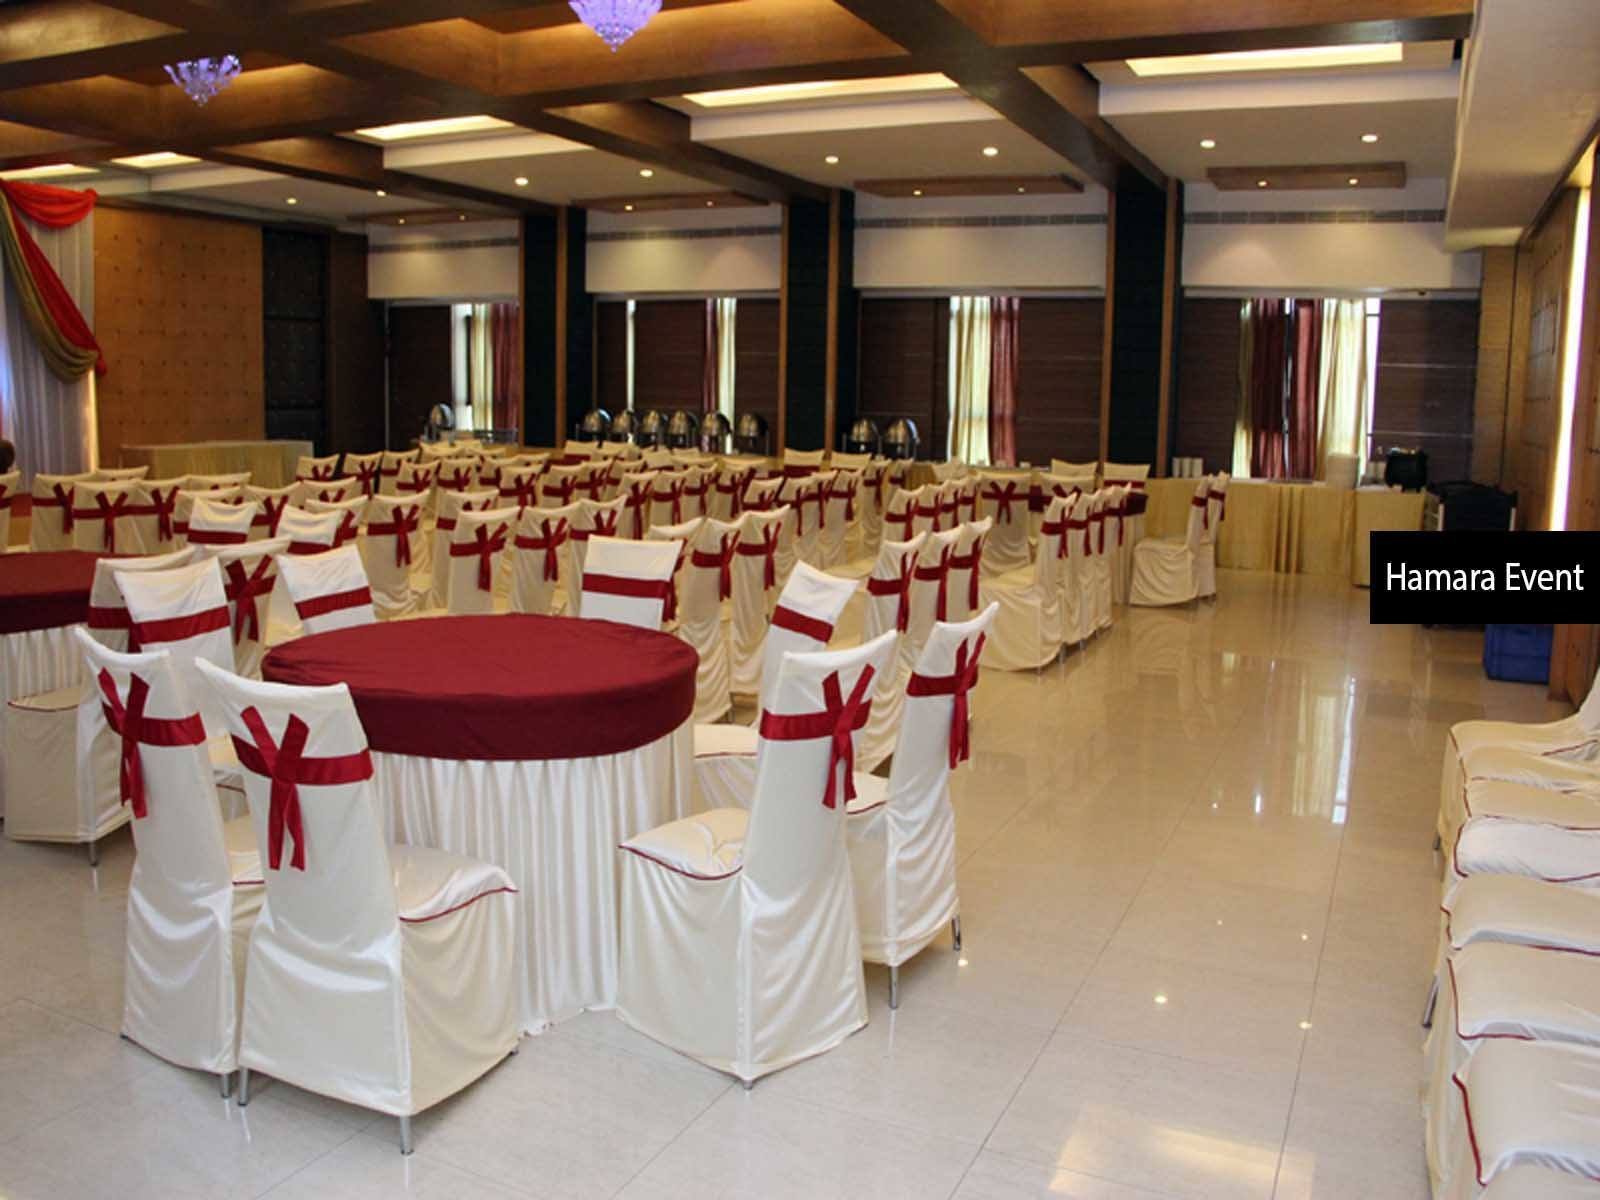 Event Venues & Banquet Halls for Wedding,Reception,Marriage,Birthday Party,Private Party,Conference,Meeting,Corporate Event by hamaraevent.com